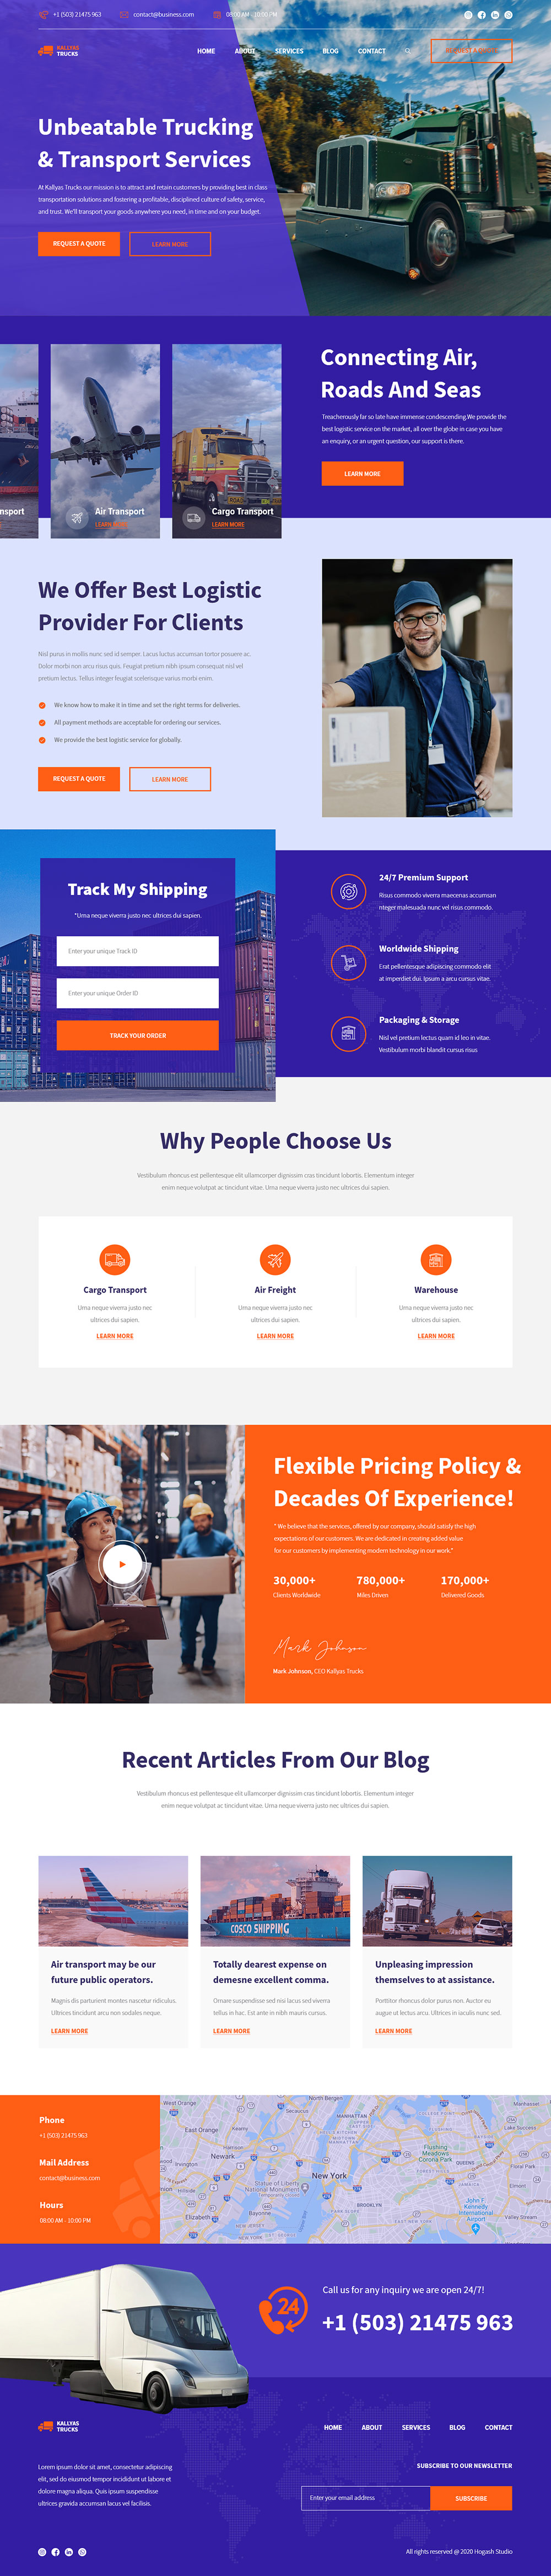 Transport Services - Free PSD Template